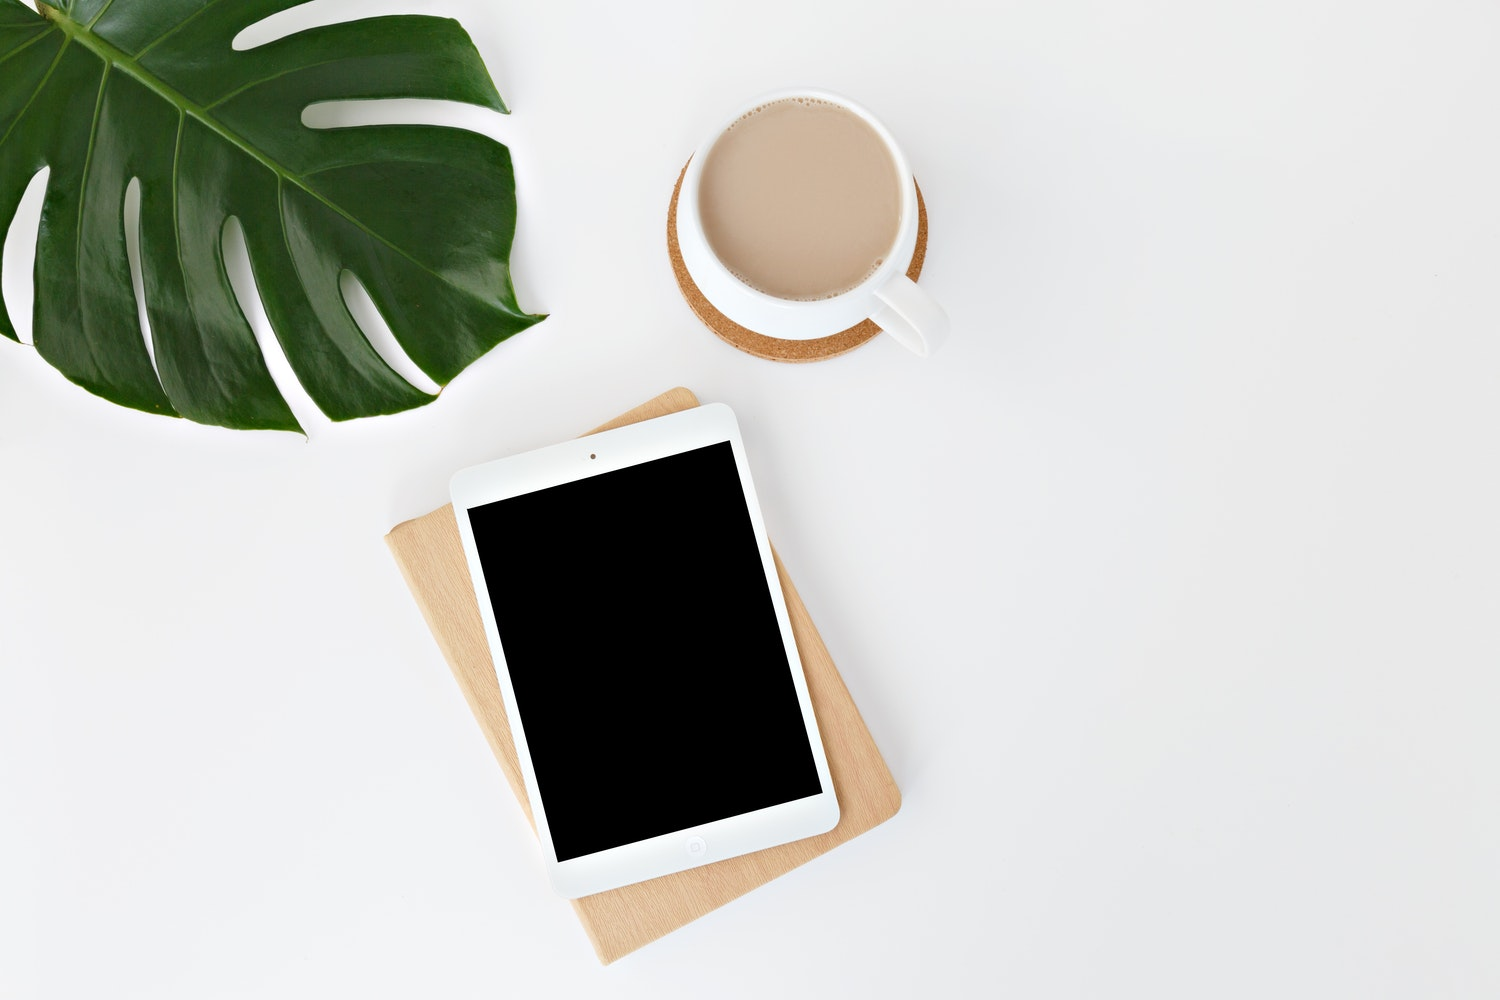 iPad with Coffee Cup and Leaf On a White Table